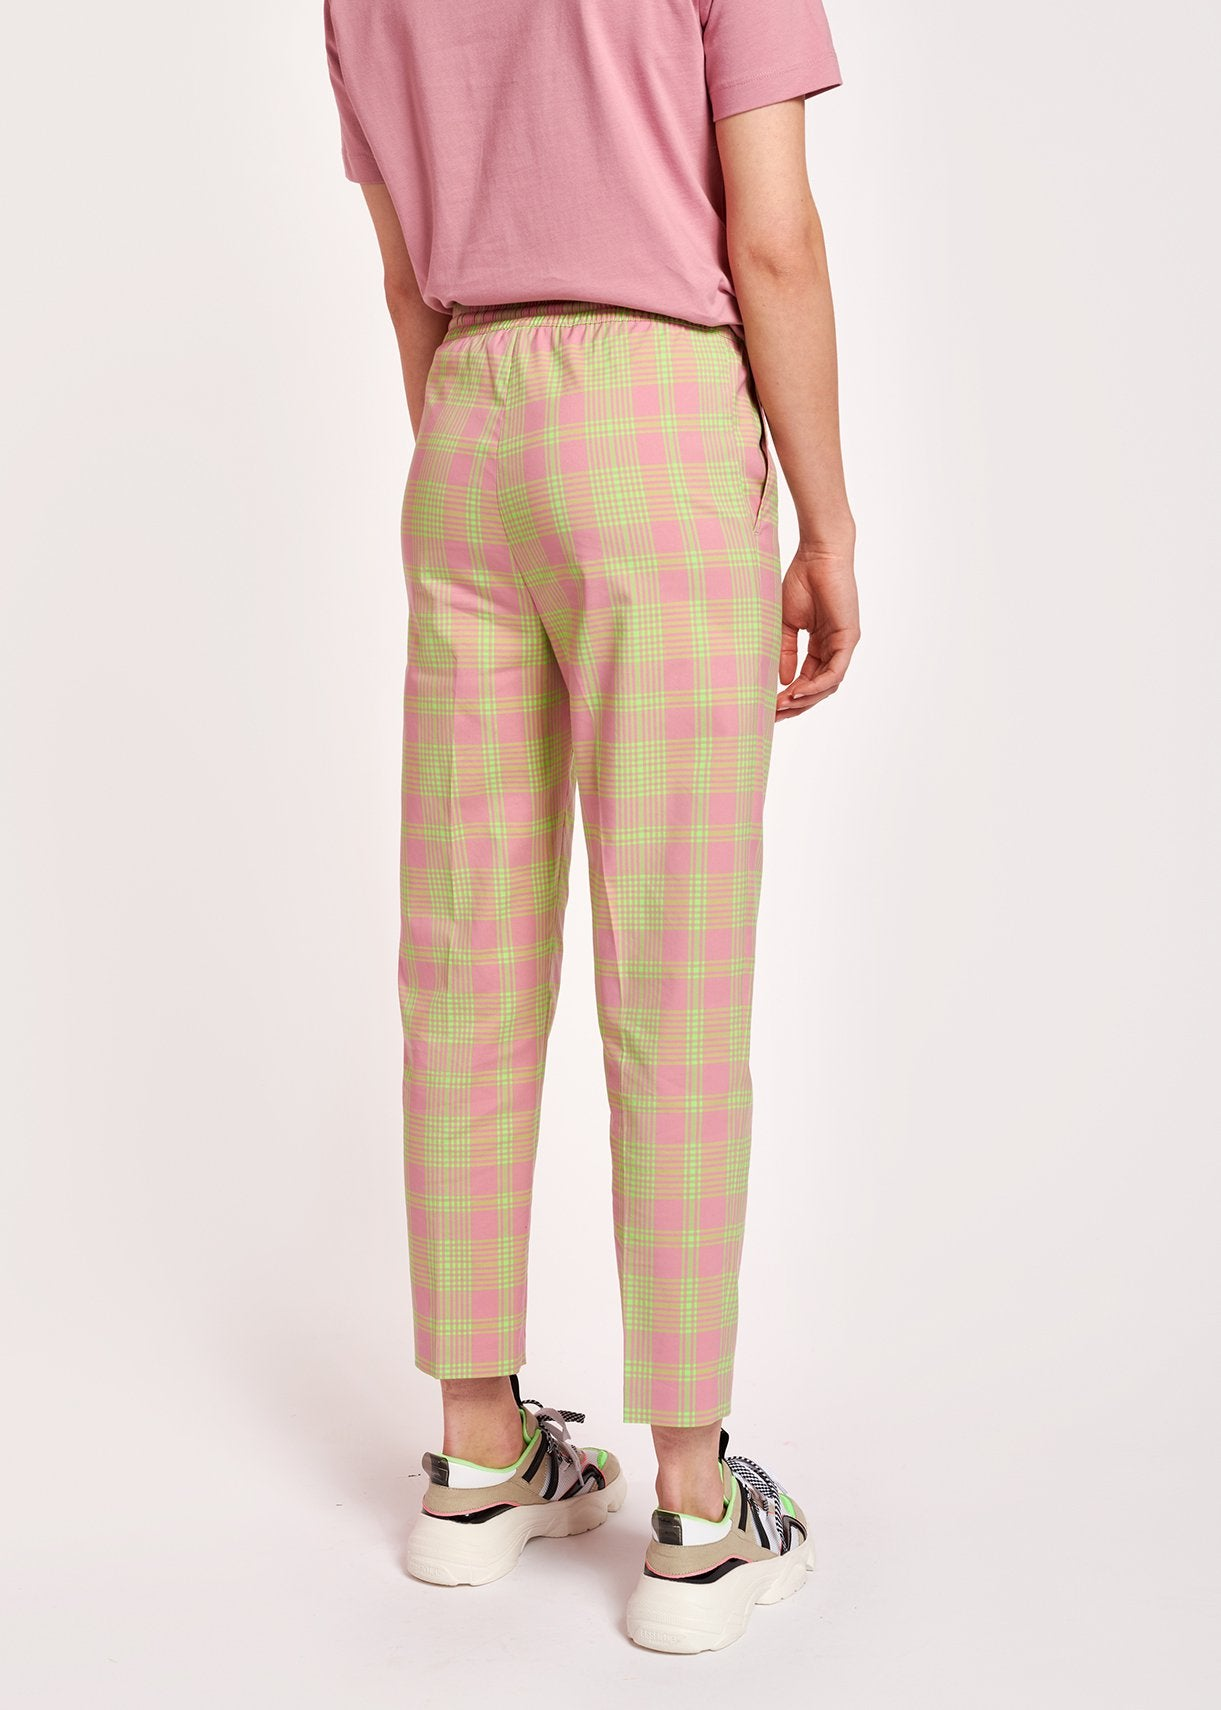 Whoever Straight Legged Pant | Dusty  Pink Plaid